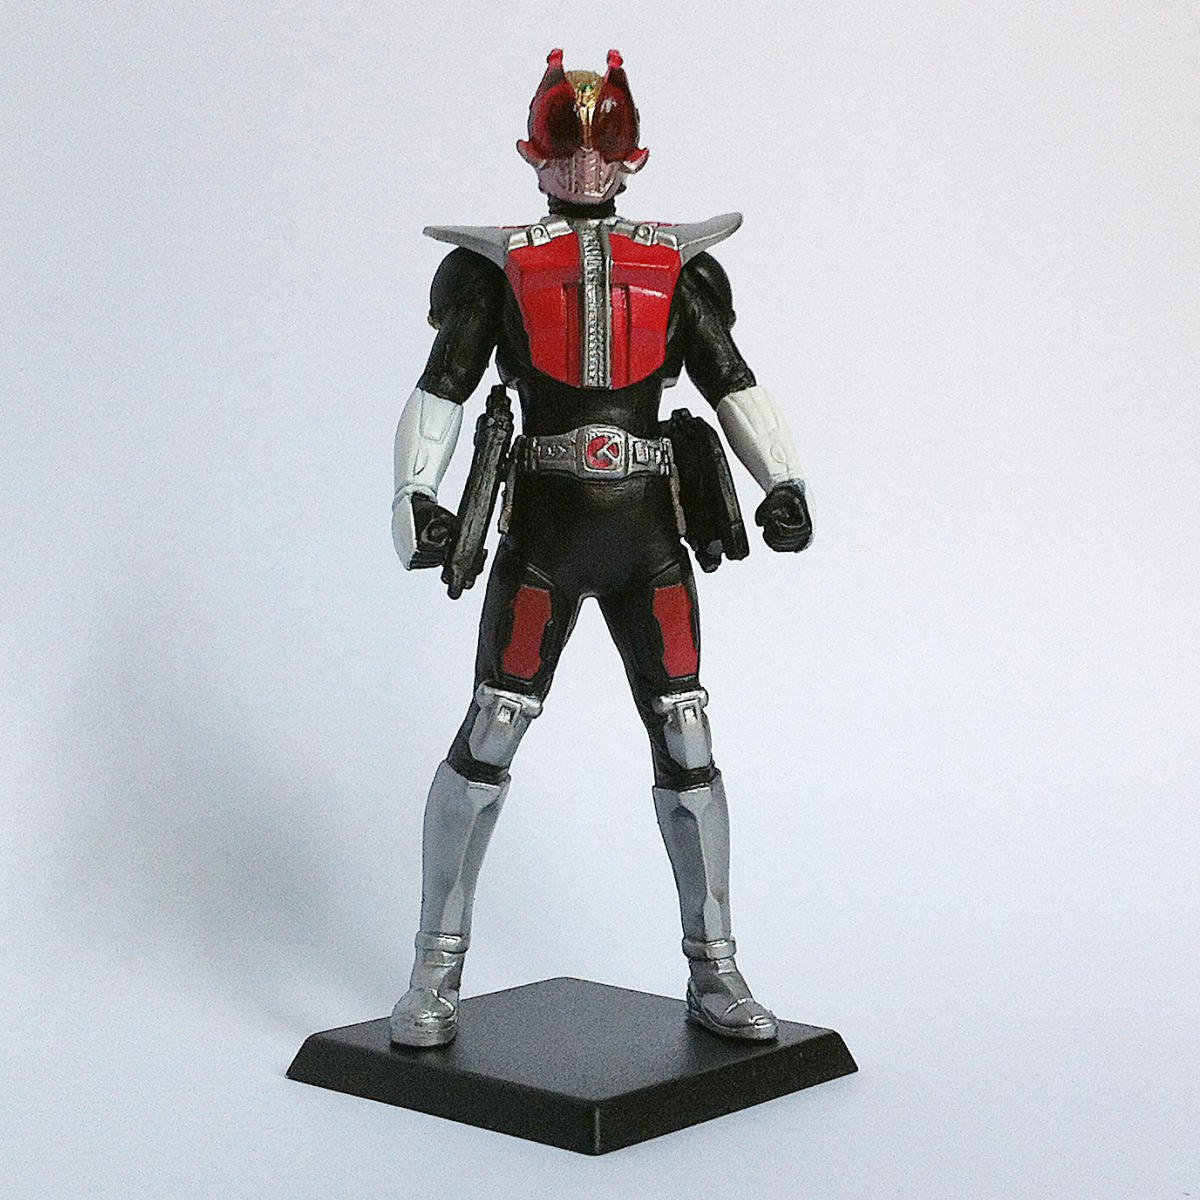 Kamen Rider Den�O Sword Form from HG CORE Kamen Rider by Bandai